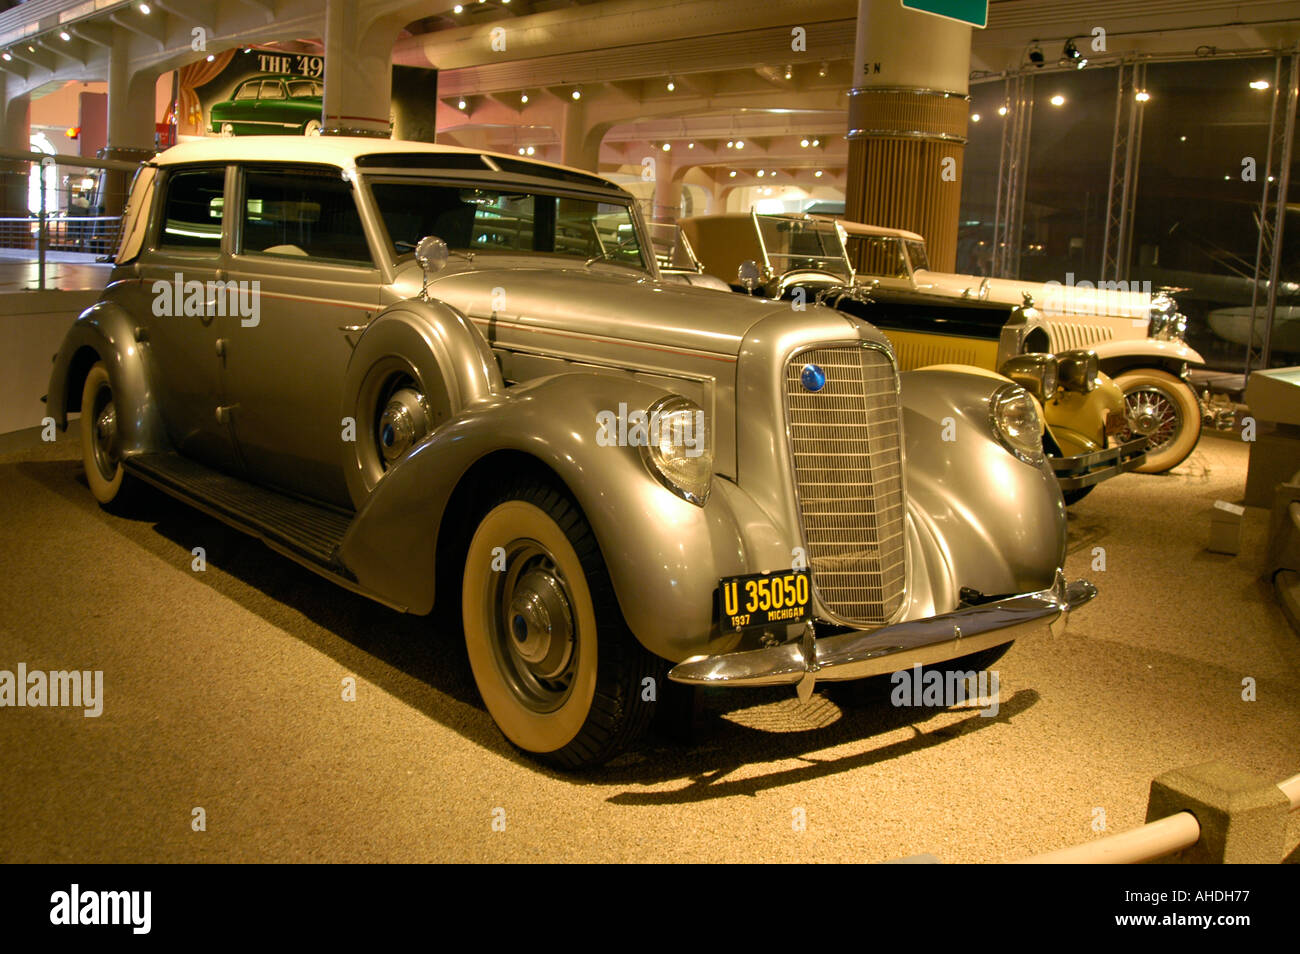 Luxury old car, Henry Ford Museum Stock Photo: 4713846 - Alamy